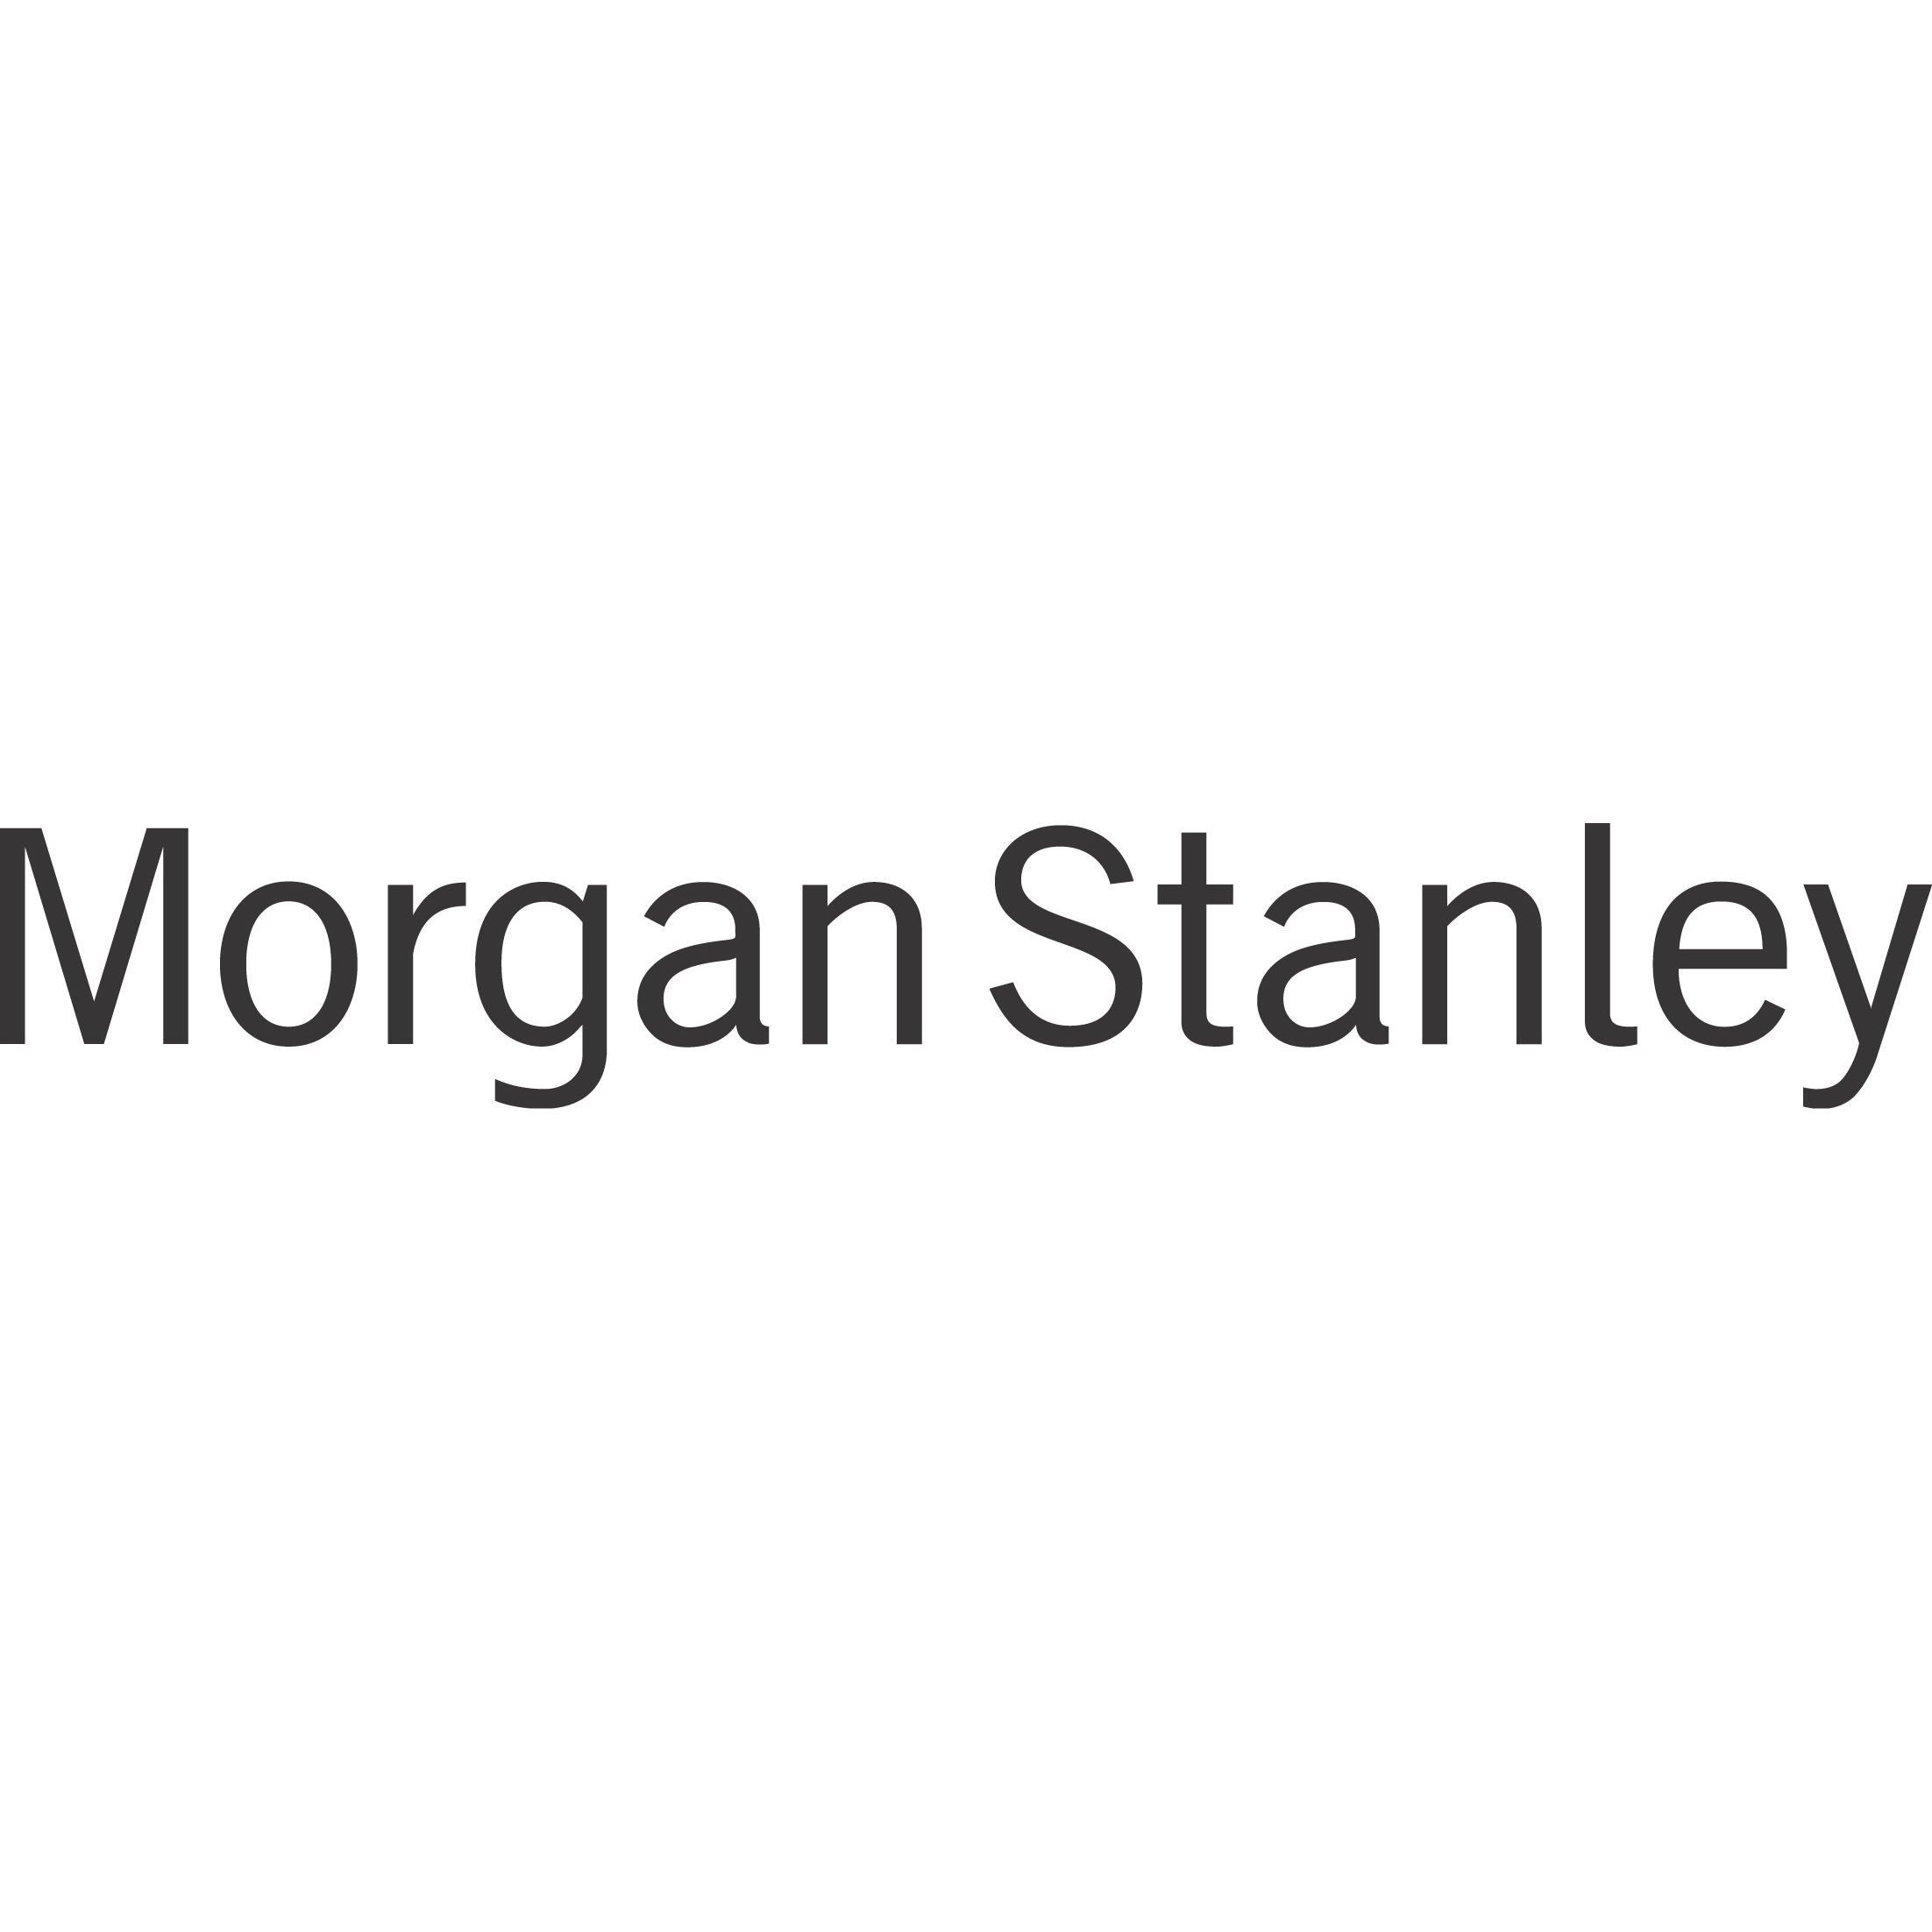 Stephen H. Riddle - Morgan Stanley